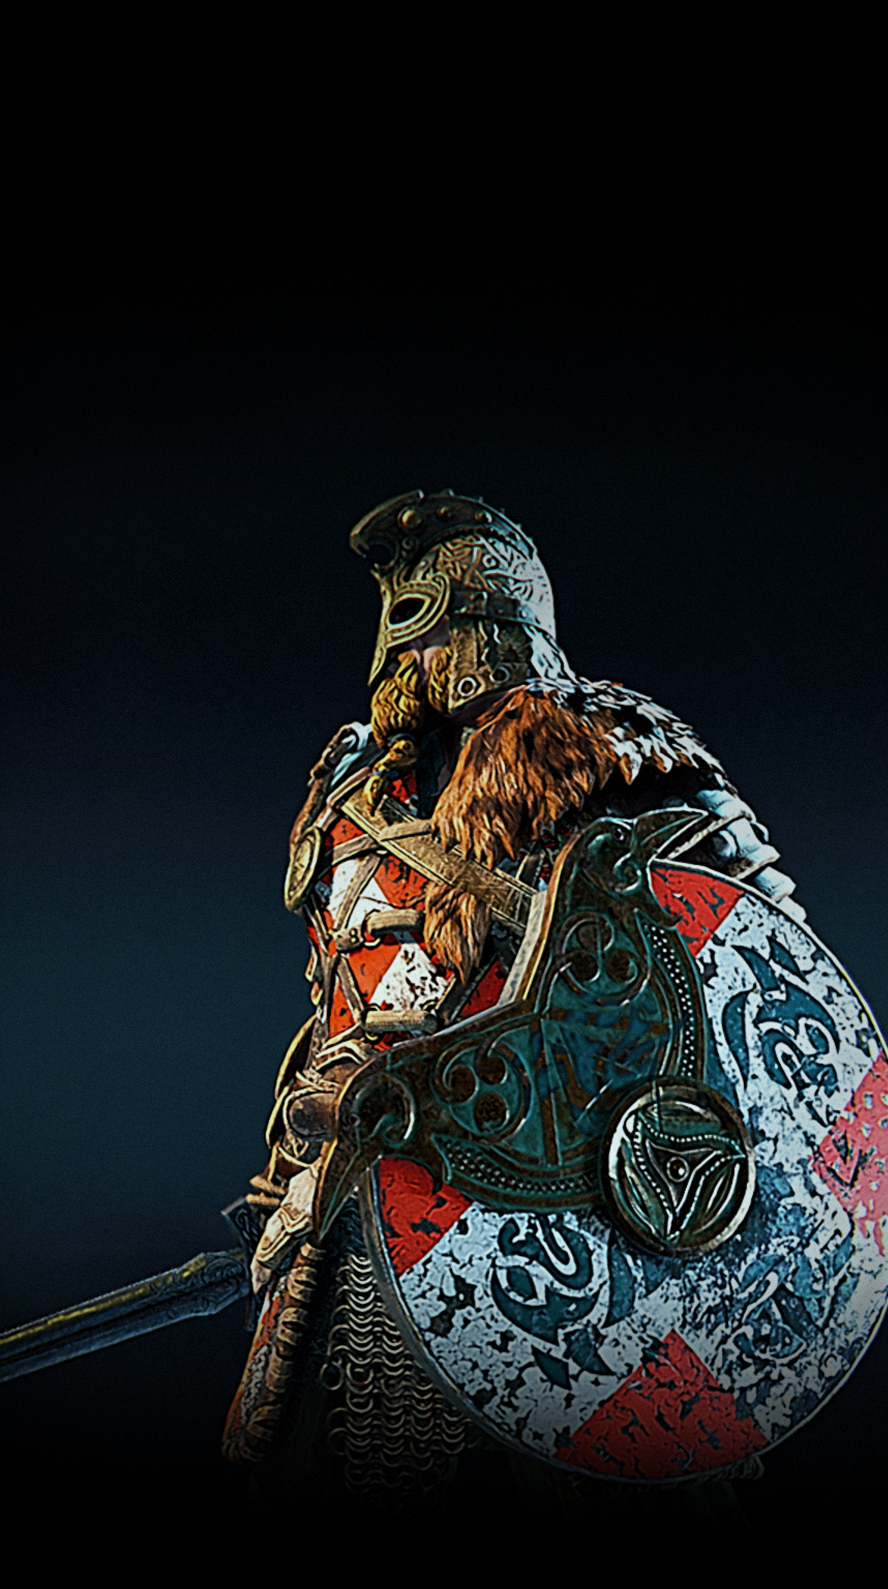 Based On Ubisoft For Honor Game My Fan Art Wallpaper For Iphone 6s Warlord Rules For Honor Viking Viking Character Viking Art